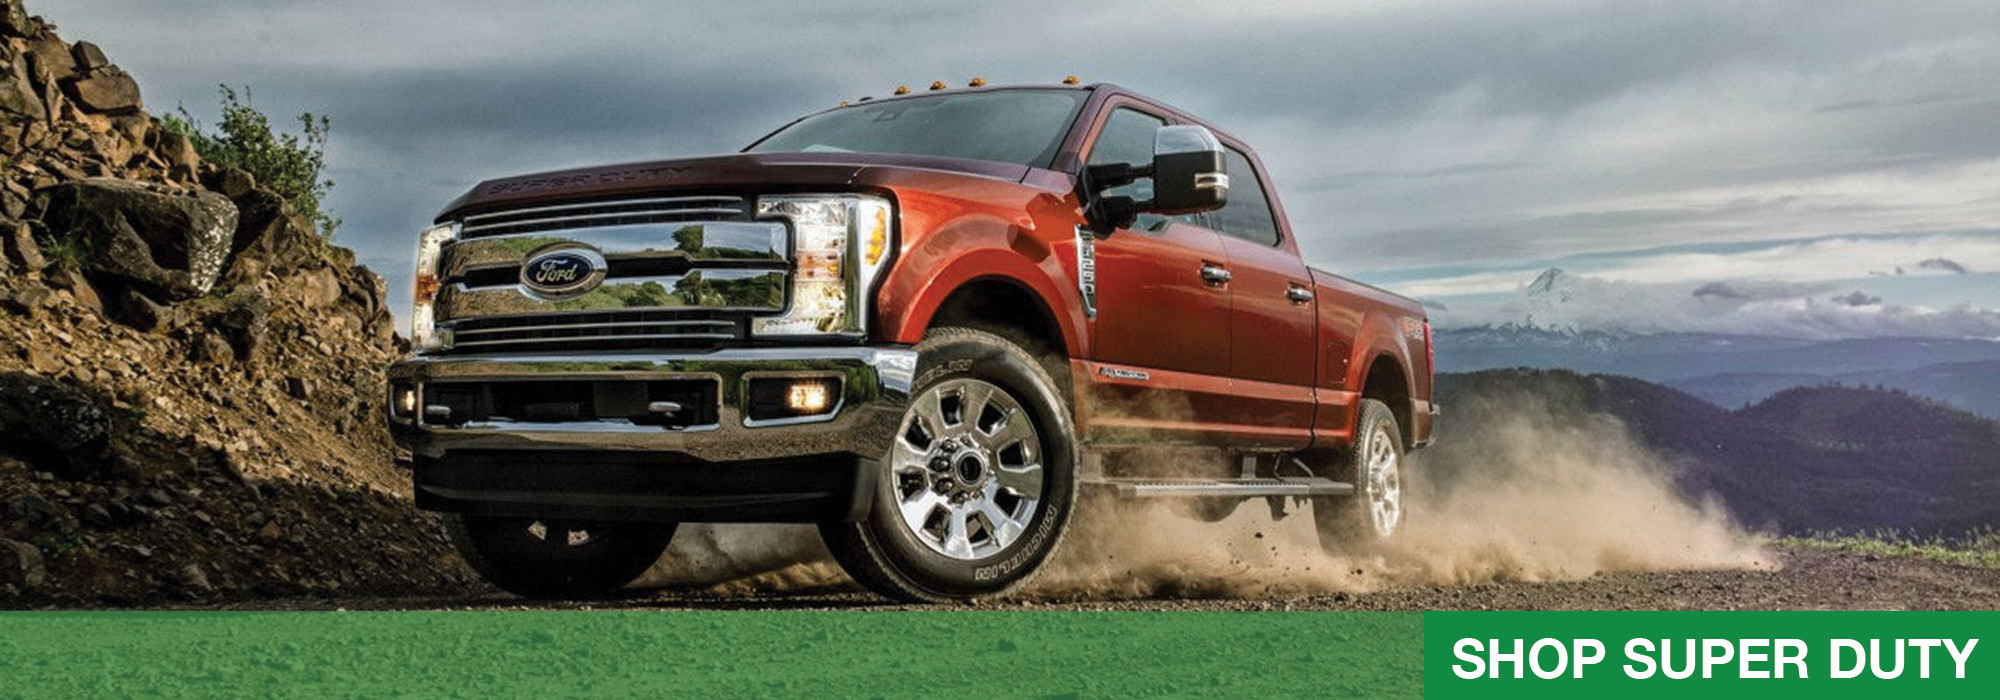 2017 Ford Super Duty in Wiscasset